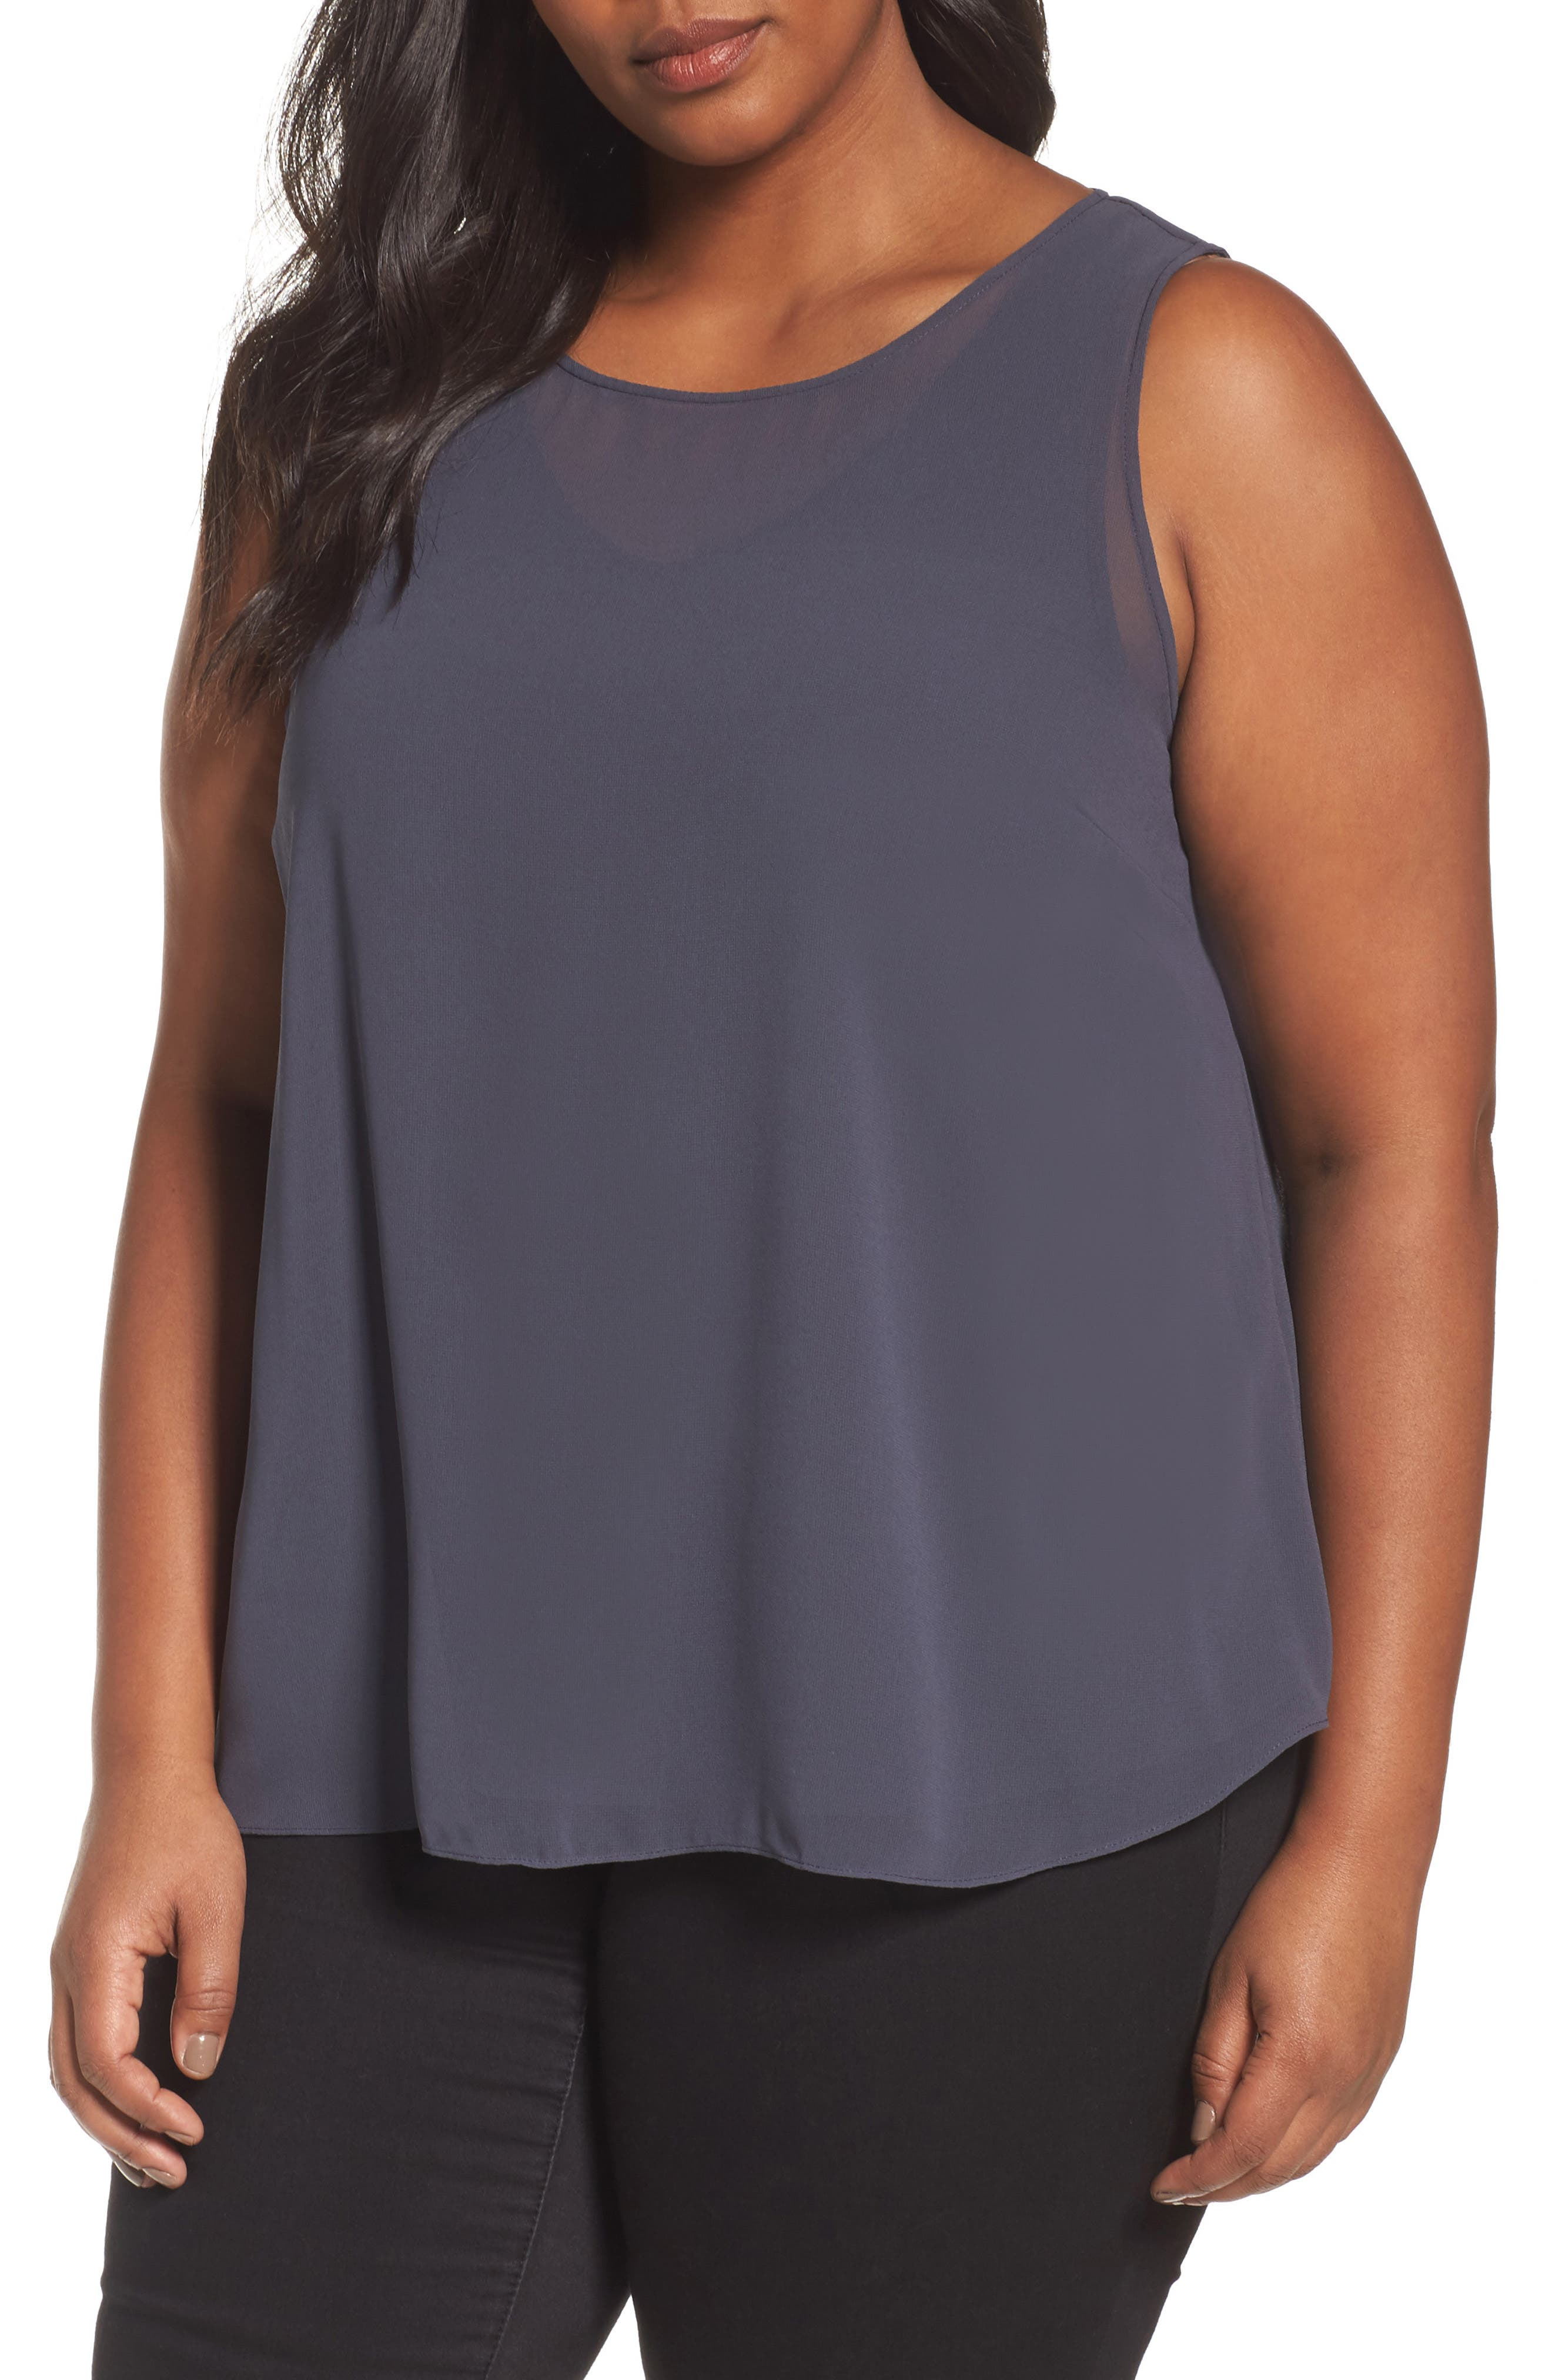 Main Image - NIC+ZOE Sheer Collection Top (Plus Size)